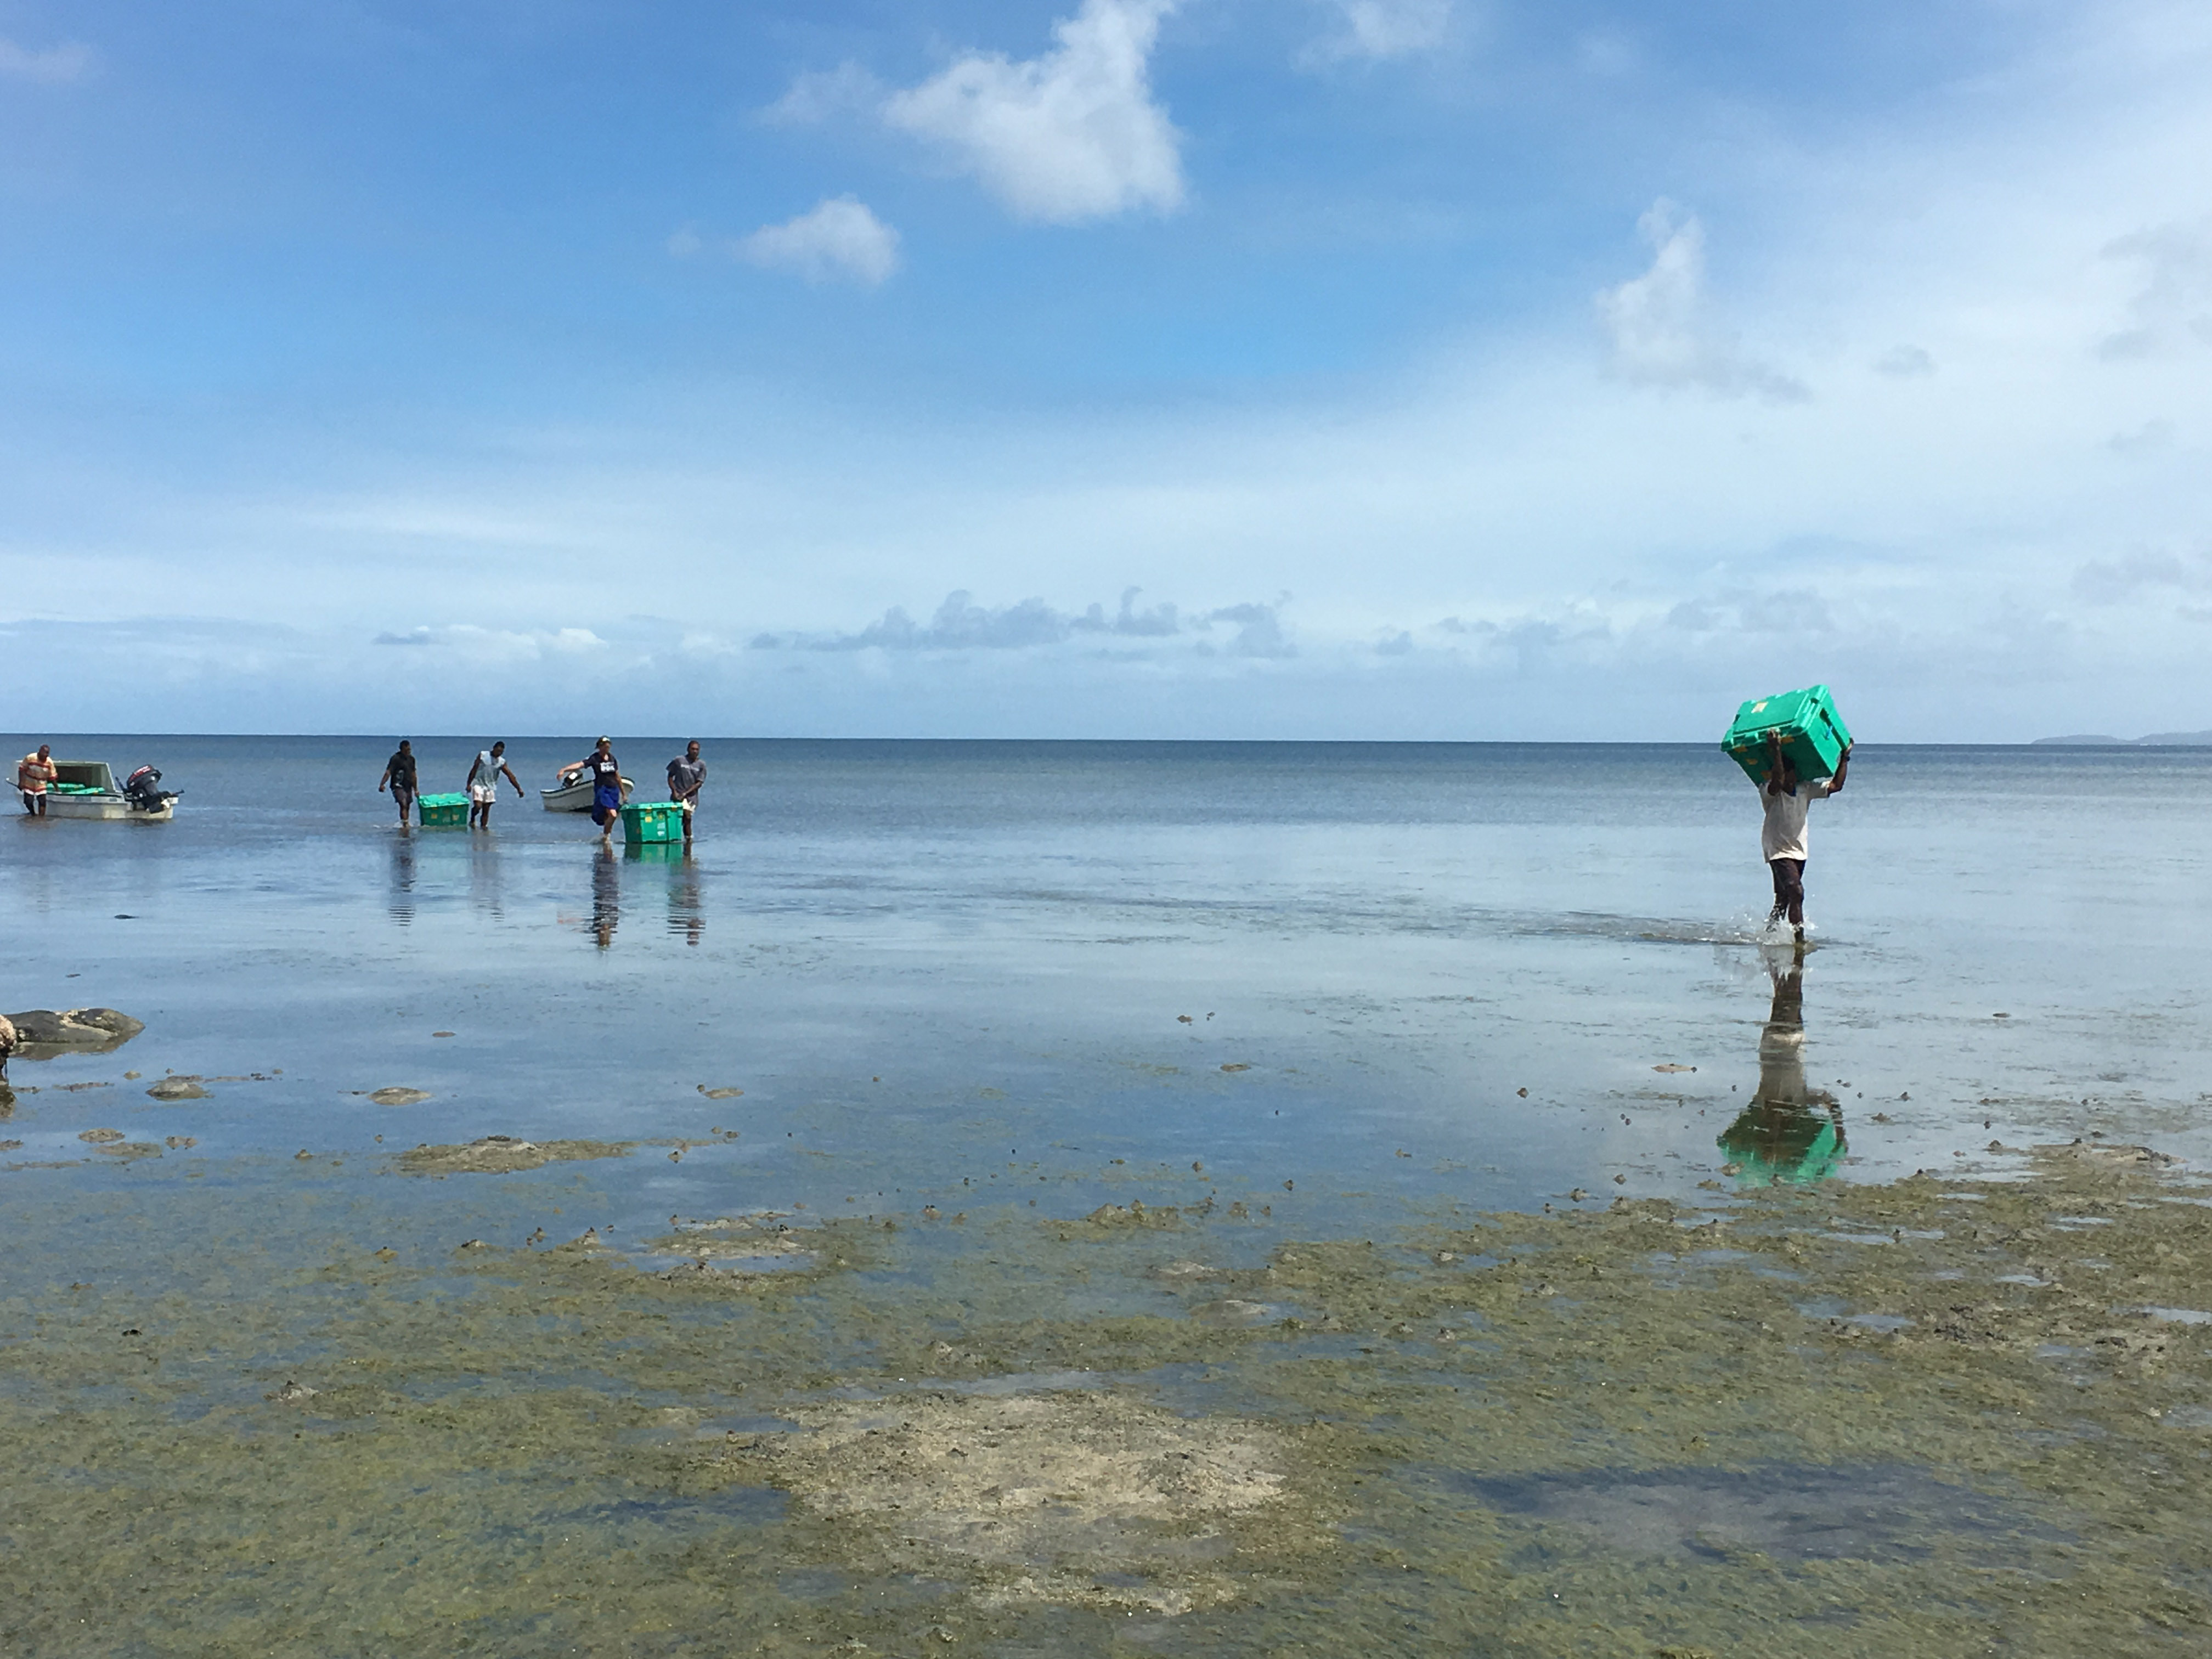 Moving ShelterBoxes across a flooded beach, Fiji